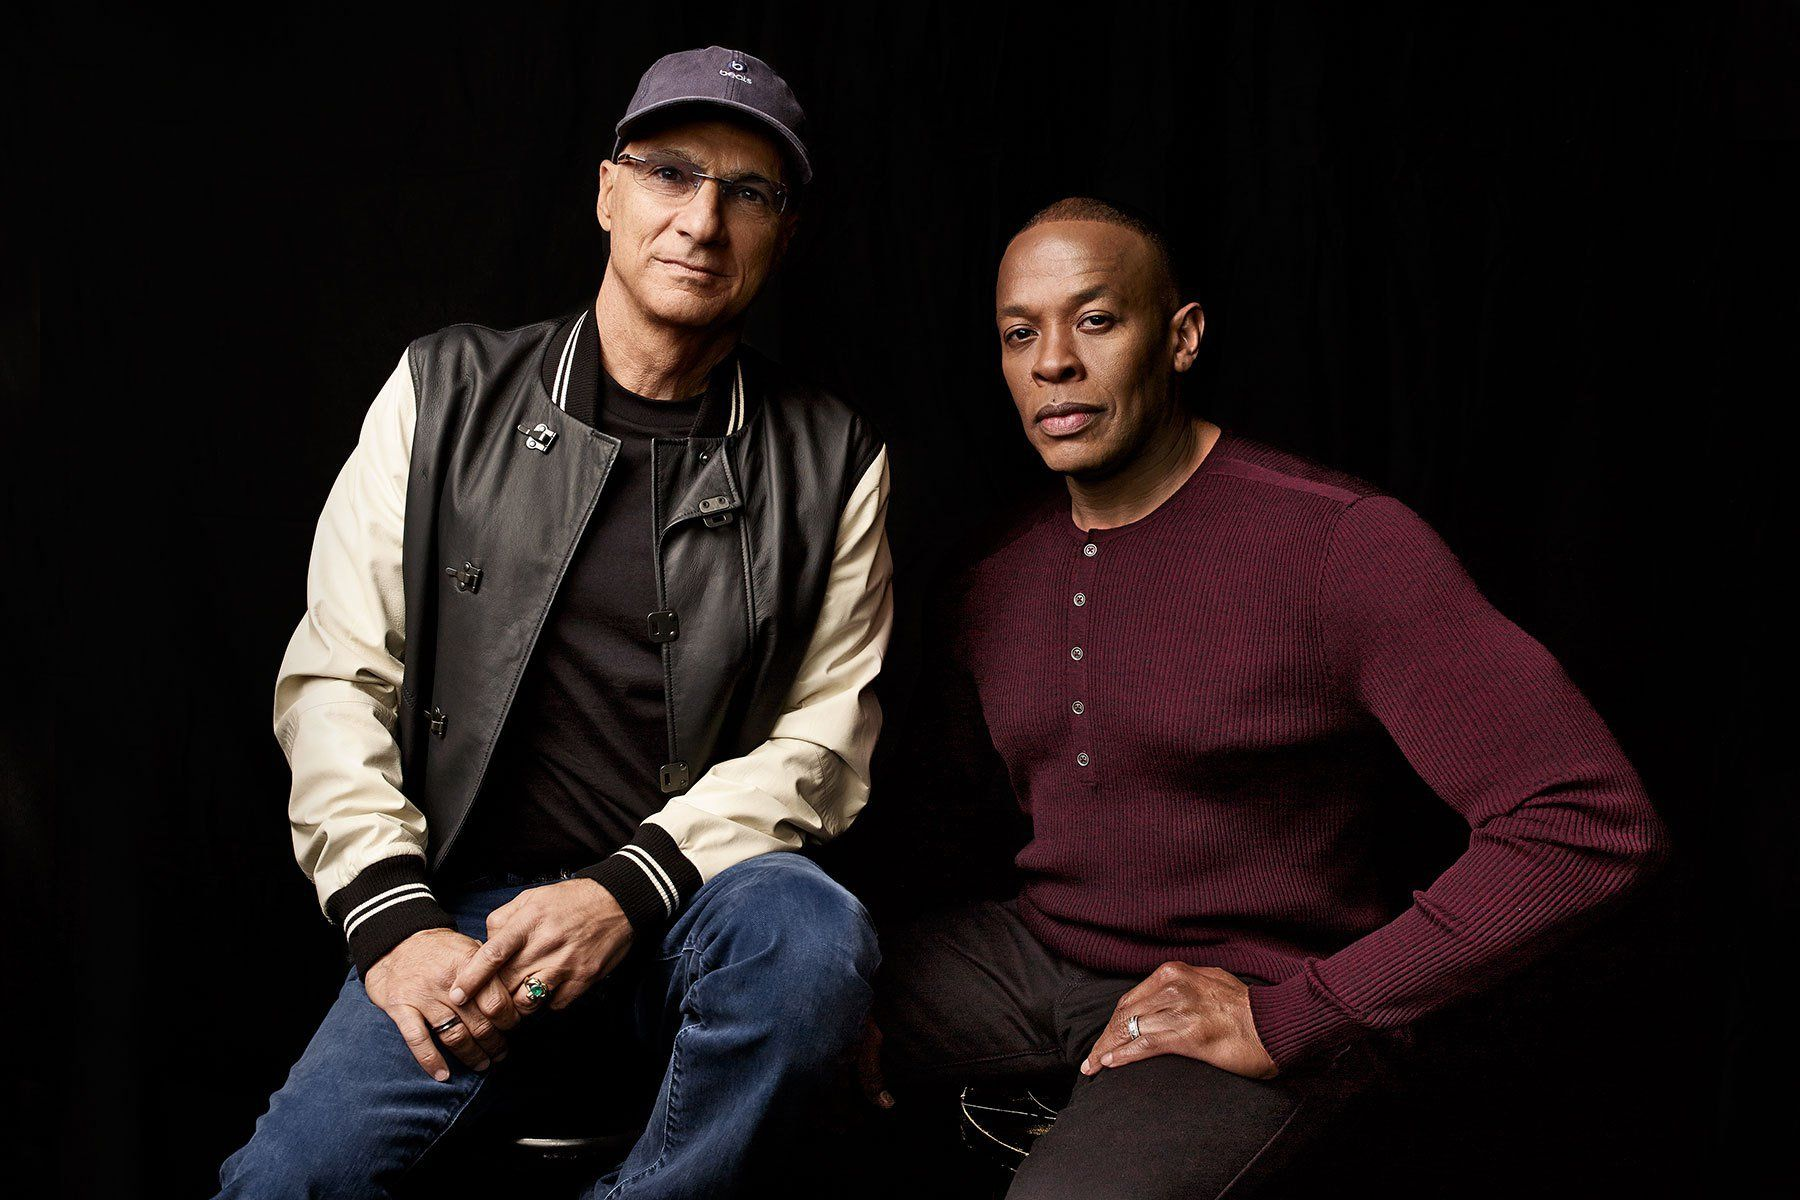 Steve Stoute interviews Jimmy Iovine